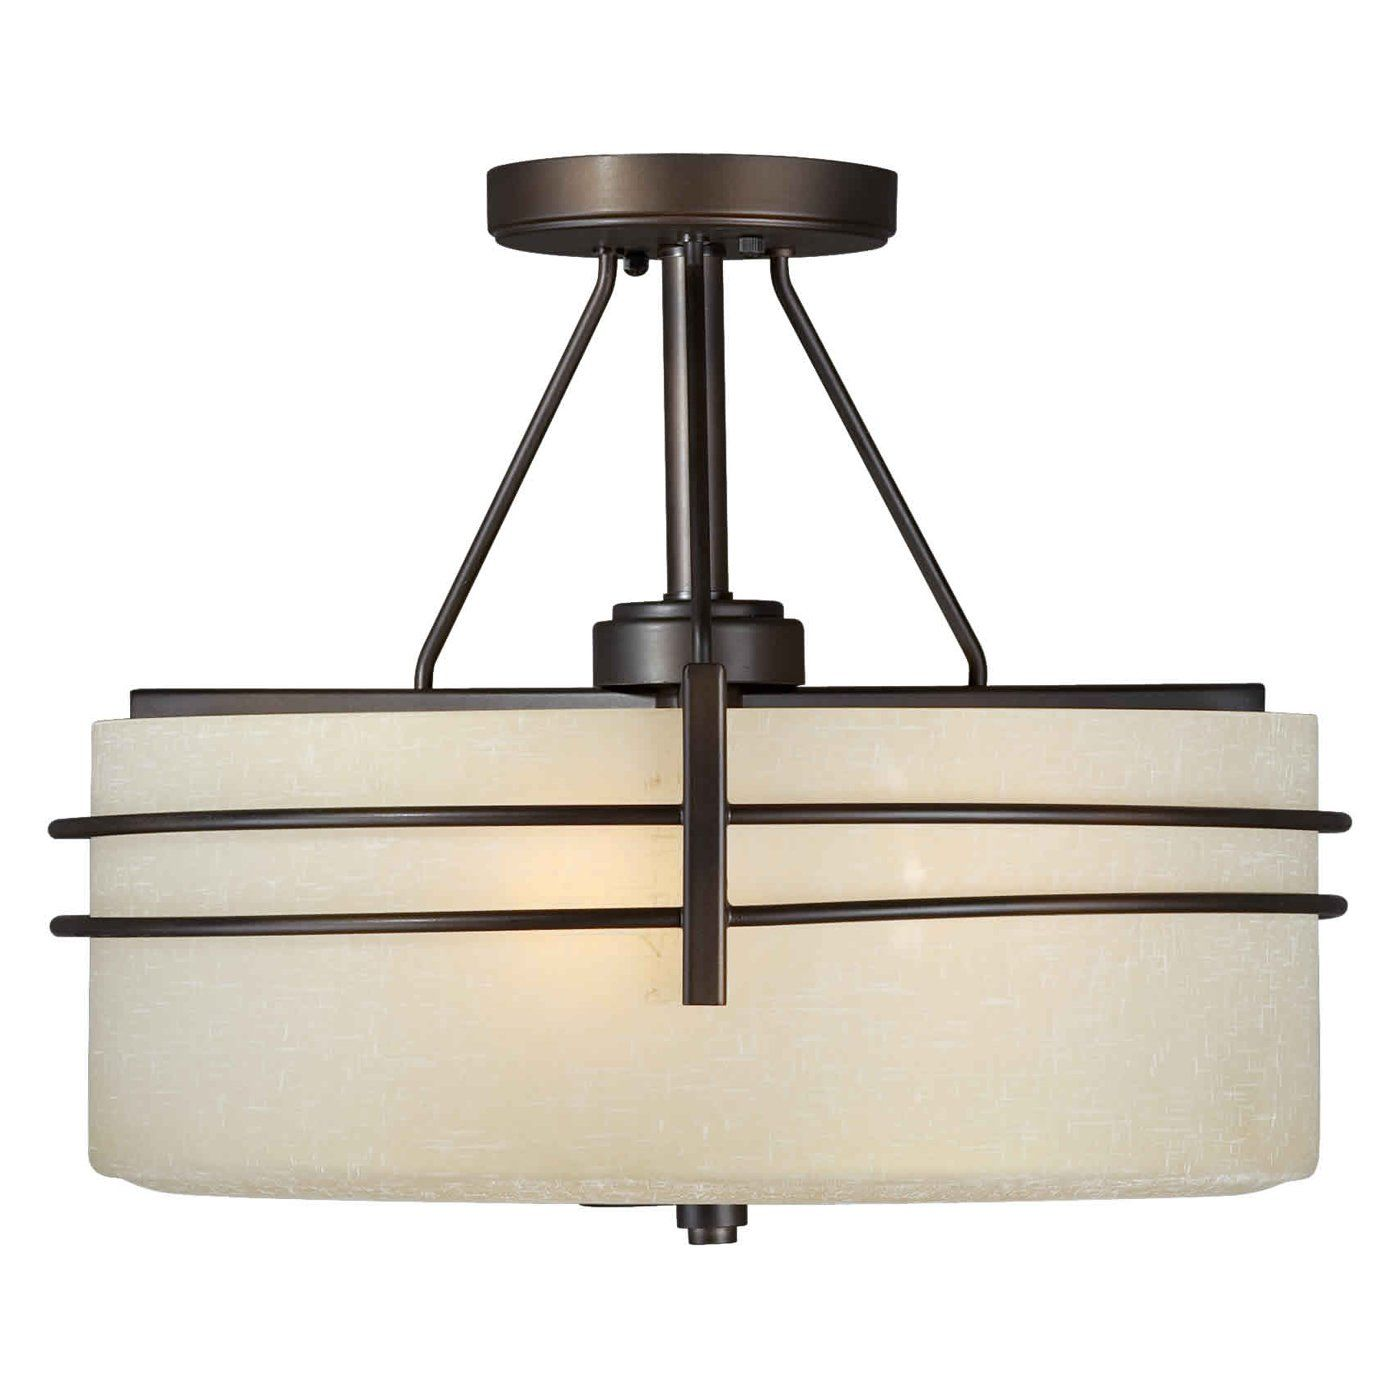 lights pendant table depot fixtures and lighting cream plates wooden lamps ideas extraordinary hanging awesome gray mount ceiling wall chairs lowes home light flush